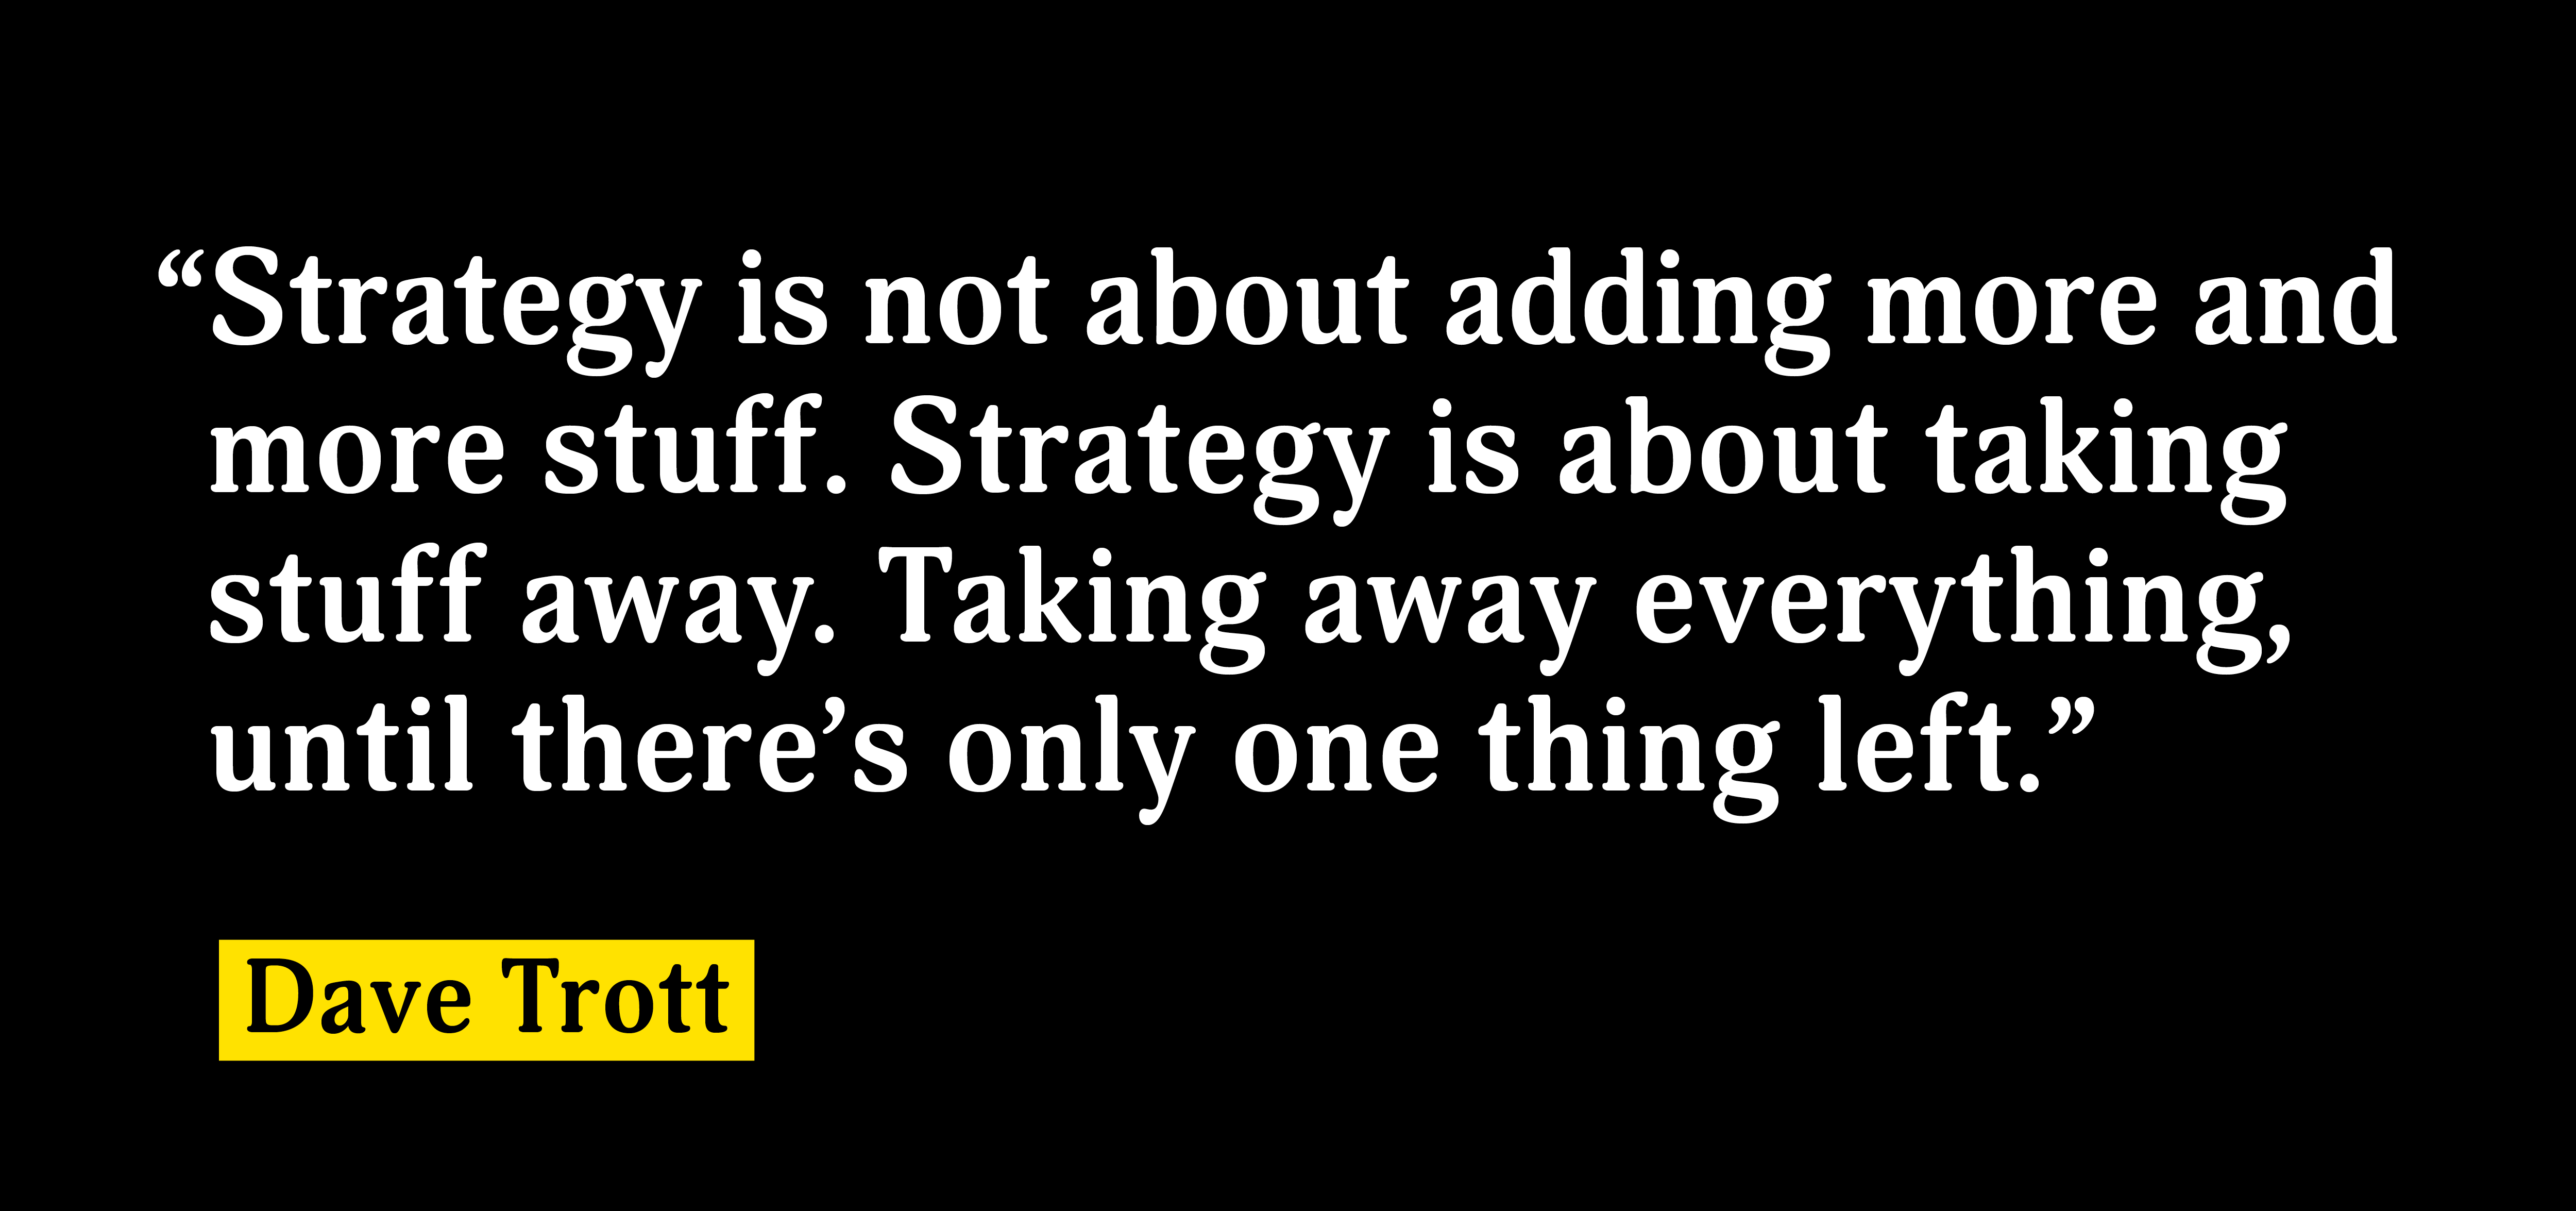 Dave Trott quote about creating brands that stand out and stand for something.